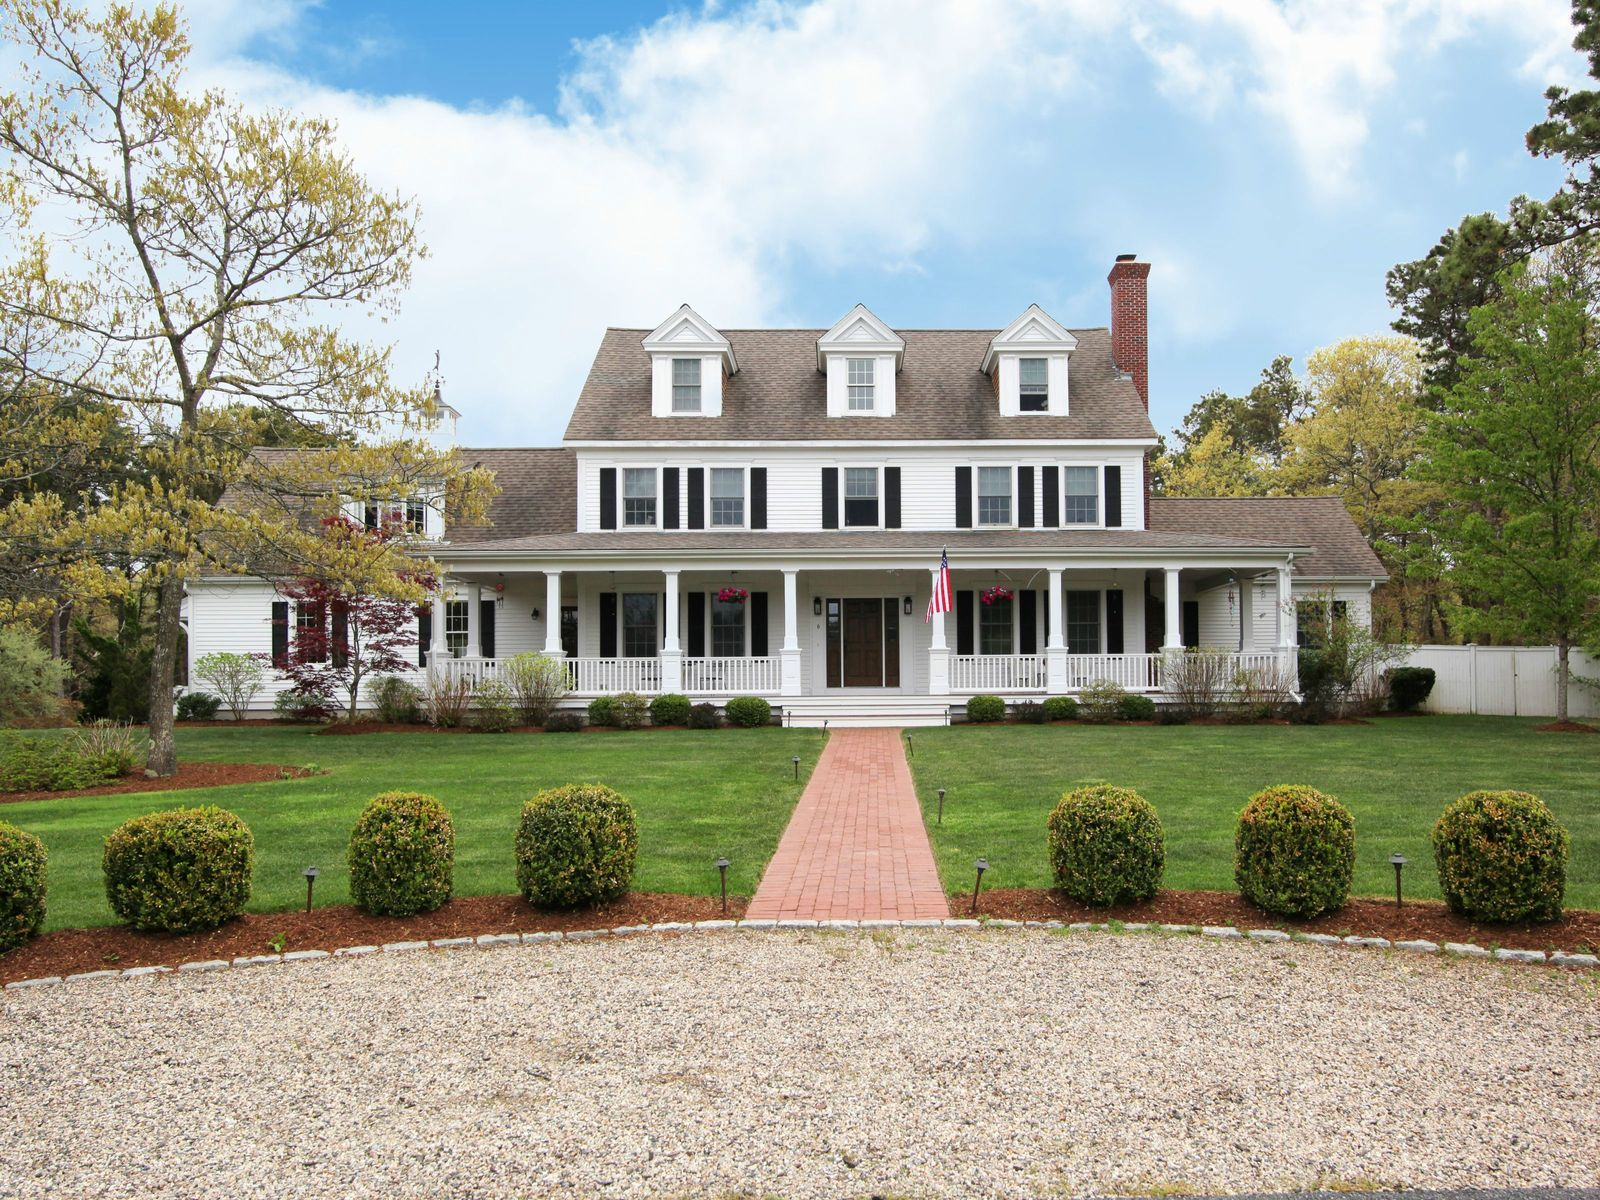 Stunning Northside Colonial with Pool, East Sandwich MA Single Family Home - Cape Cod Real Estate